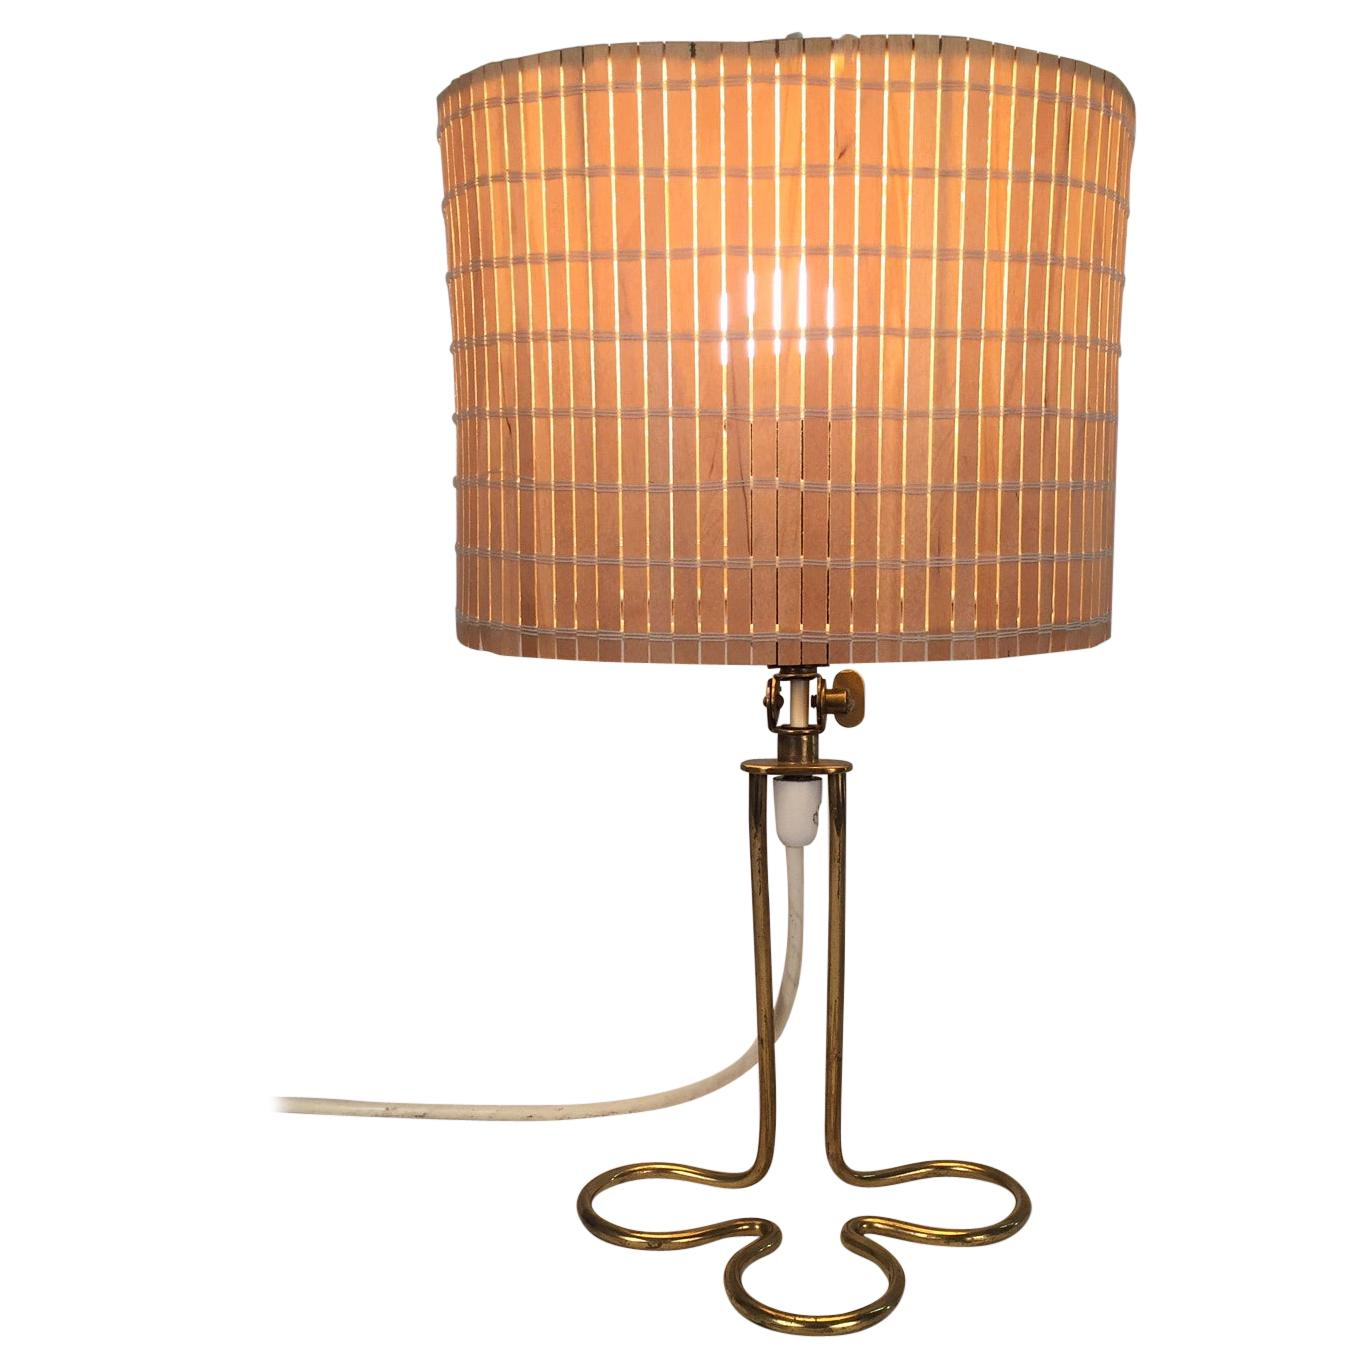 Mauri Almari Brass and Wooden Rods Table Lamp, 1950